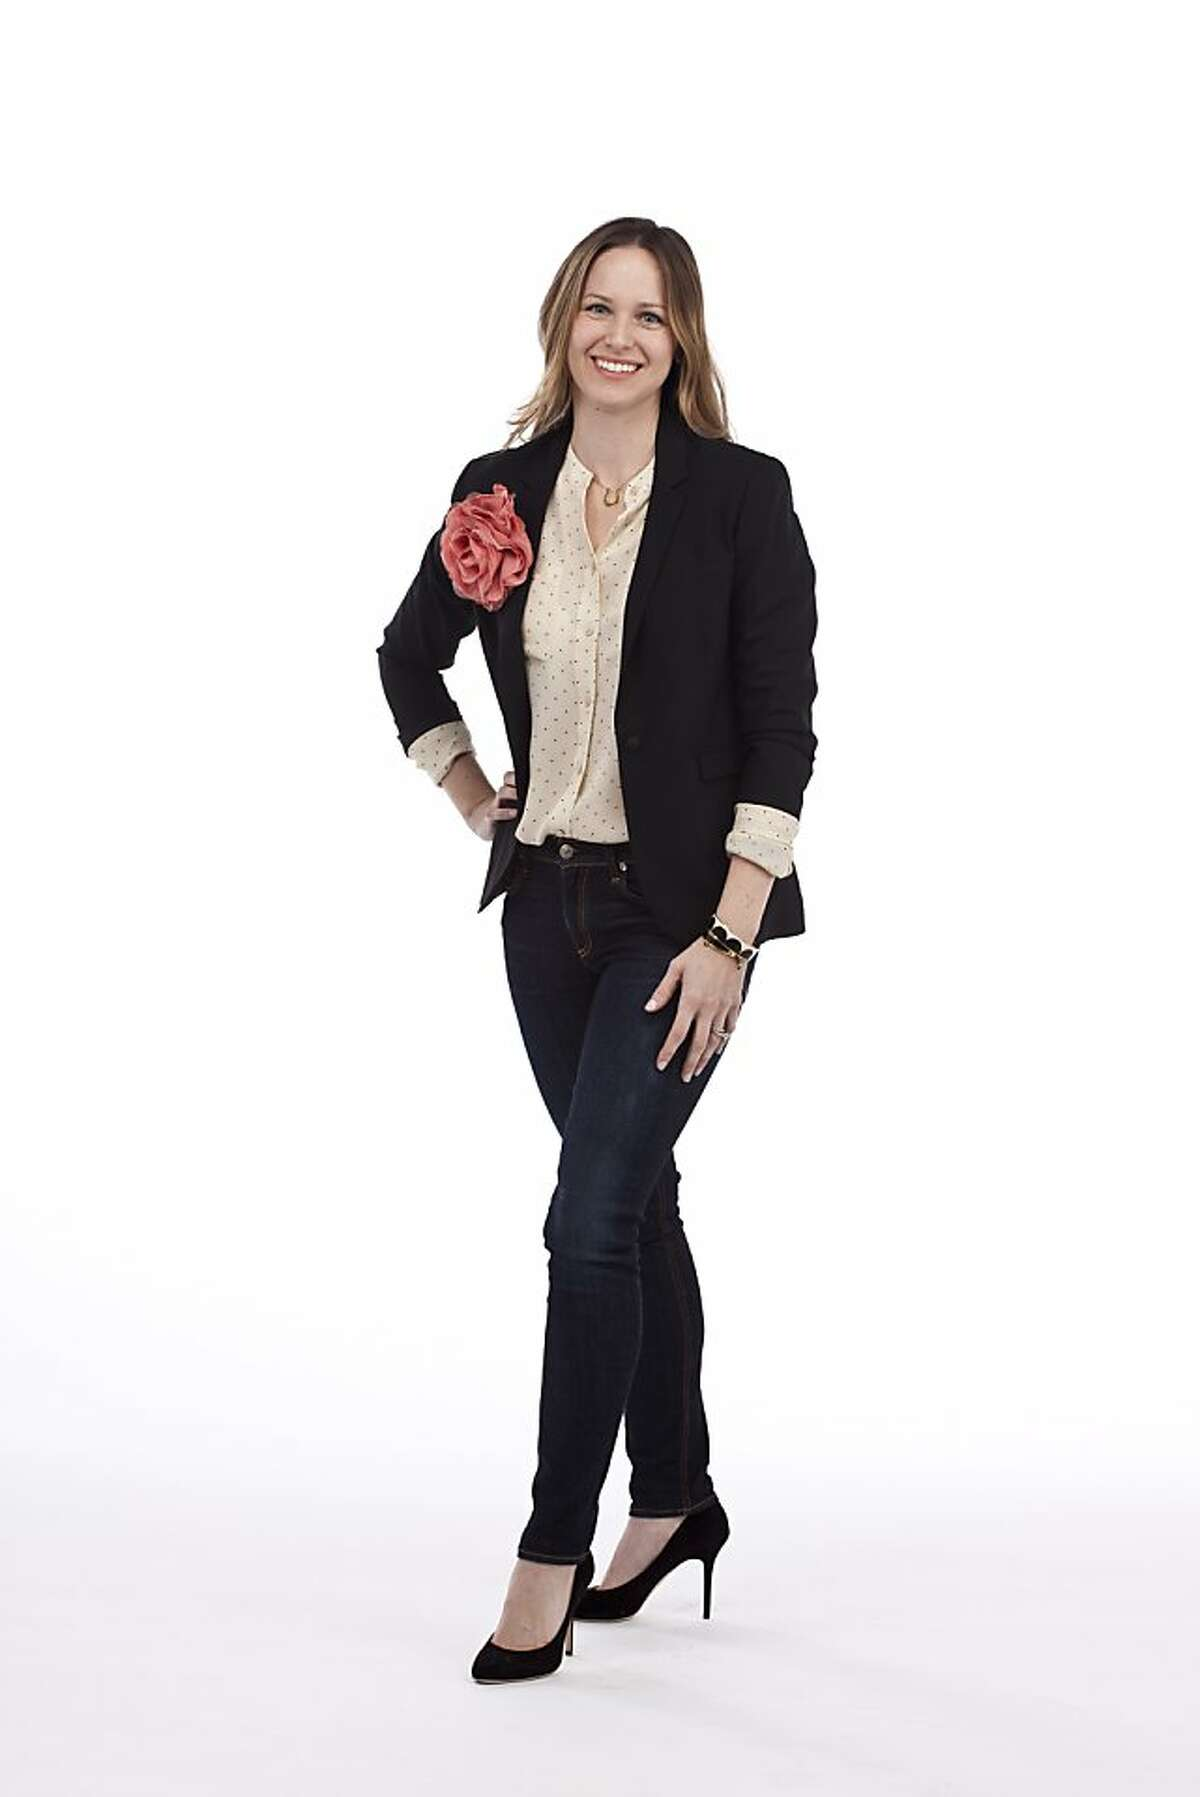 Amanda Teal, seen on Thursday, March 22, 2012 in San Francisco, Calif., is in this week's Stylemaker Spotlight.